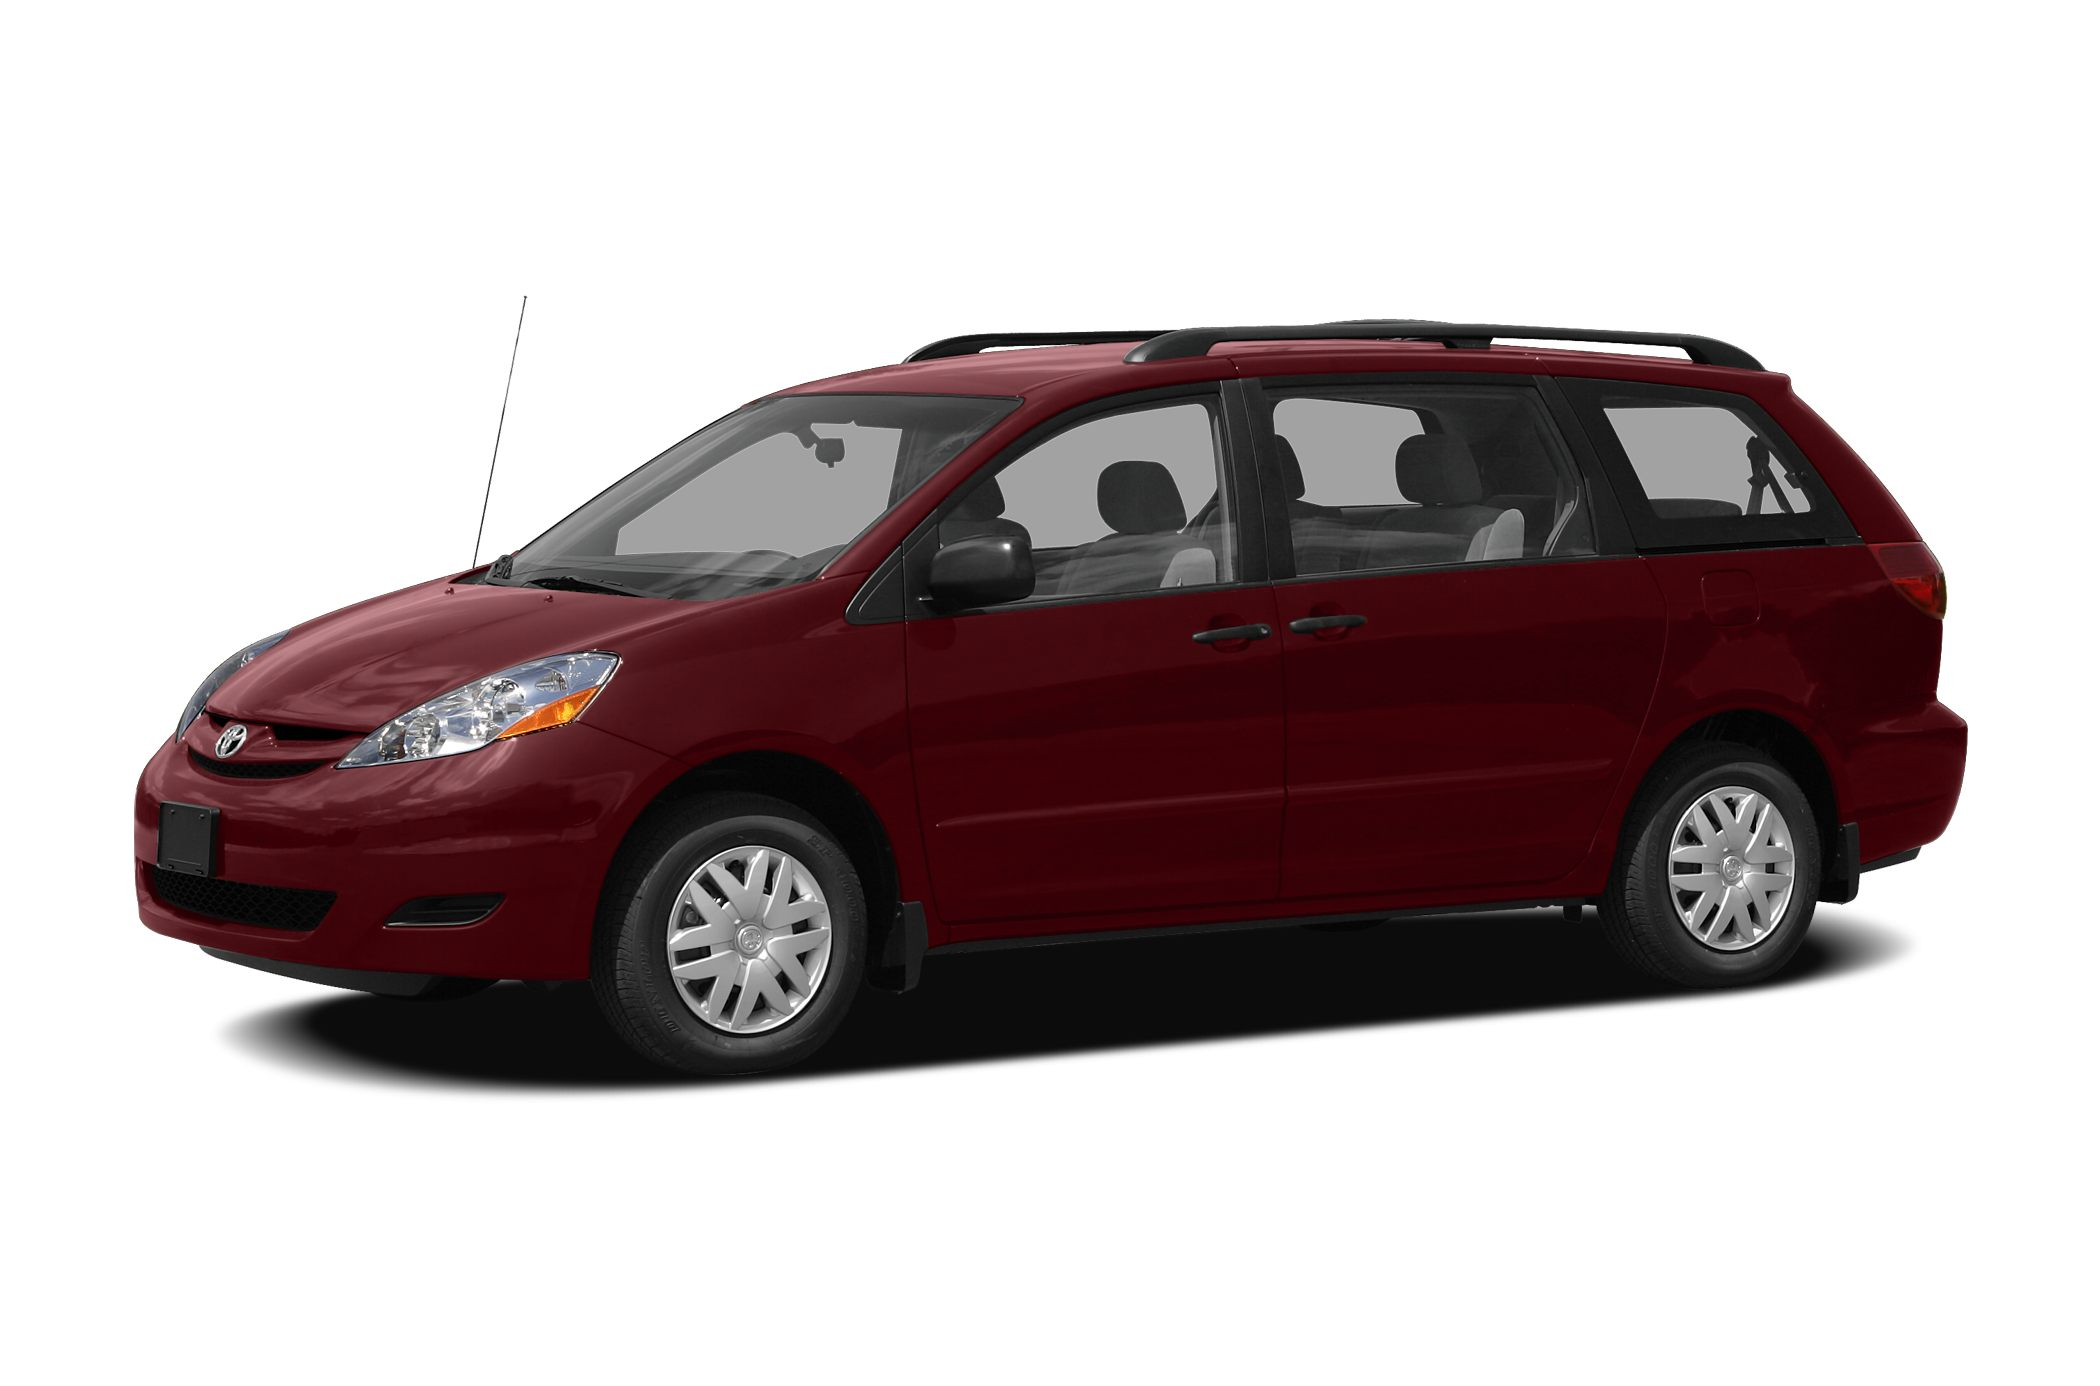 2007 Toyota Sienna XLE Limited Minivan for sale in Harvey for $13,395 with 92,123 miles.